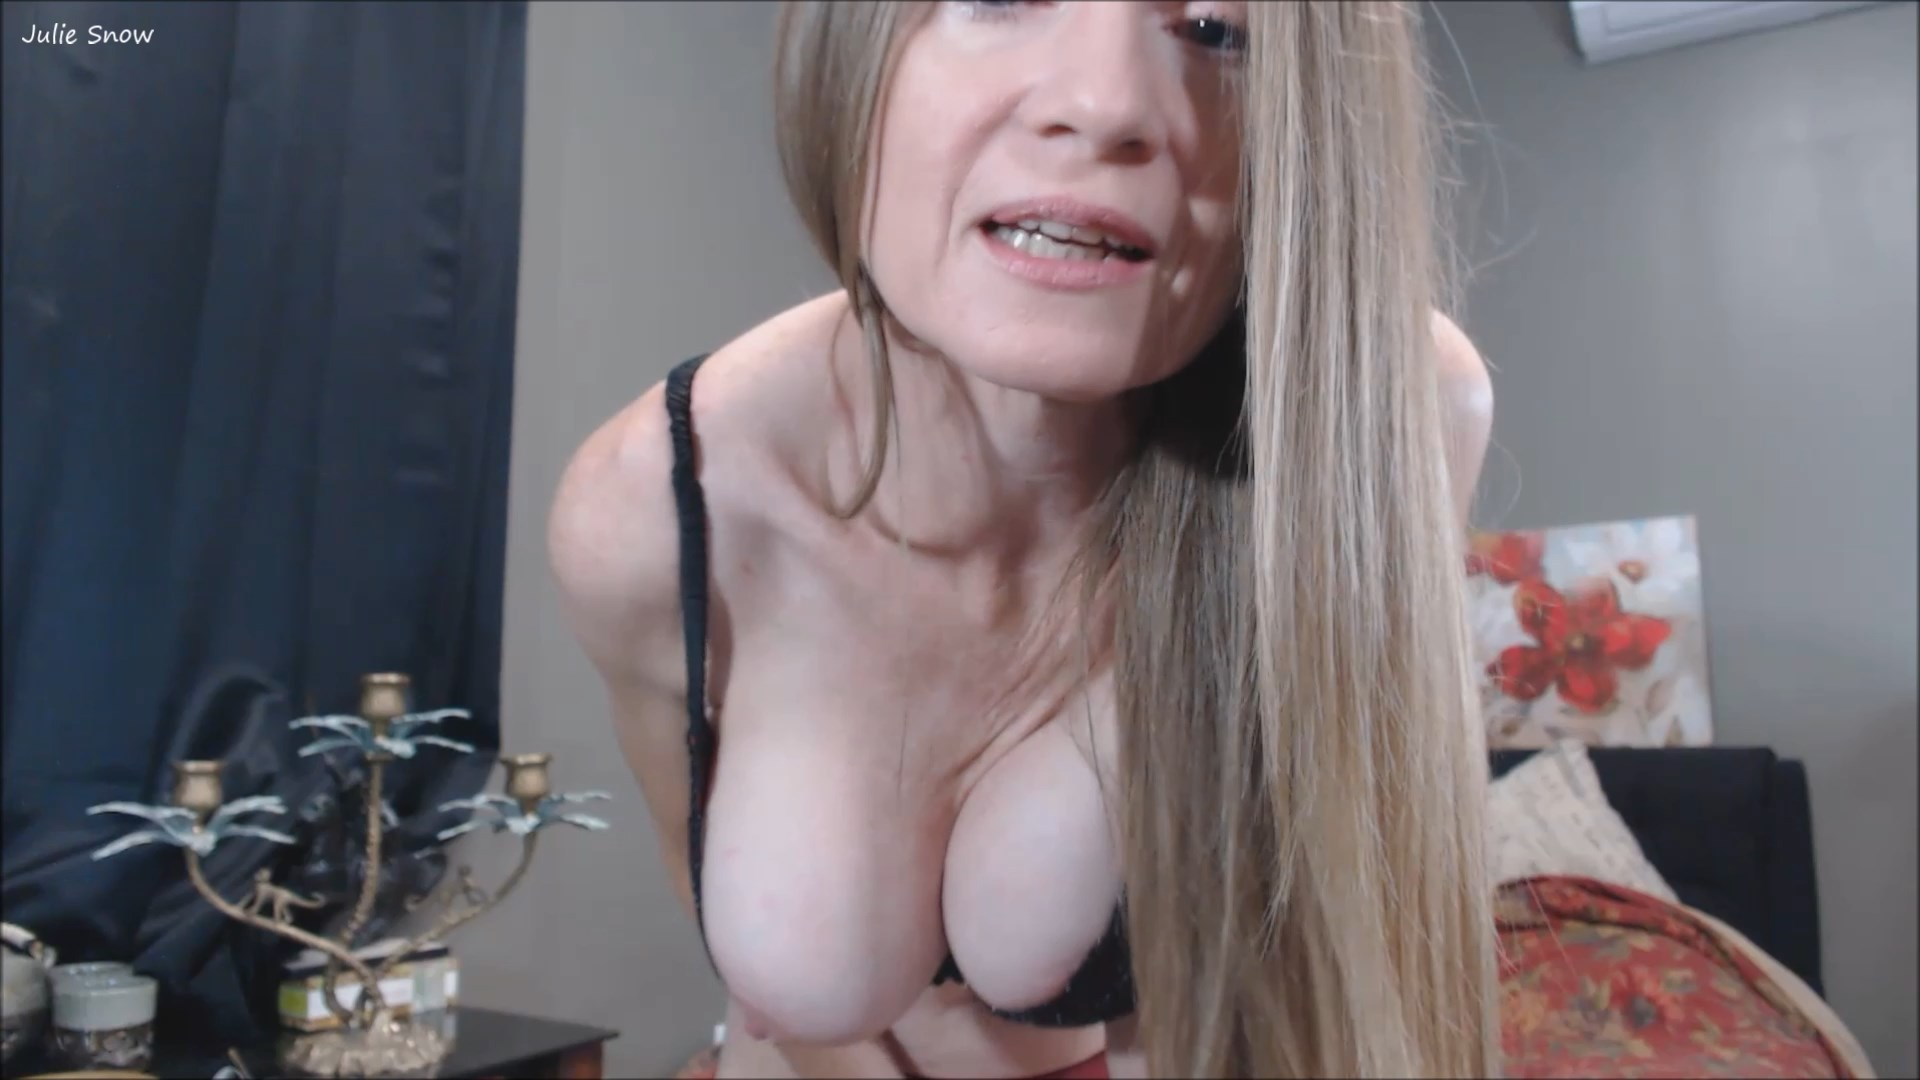 Julie Snow - Your Vape Crazy Step Mom